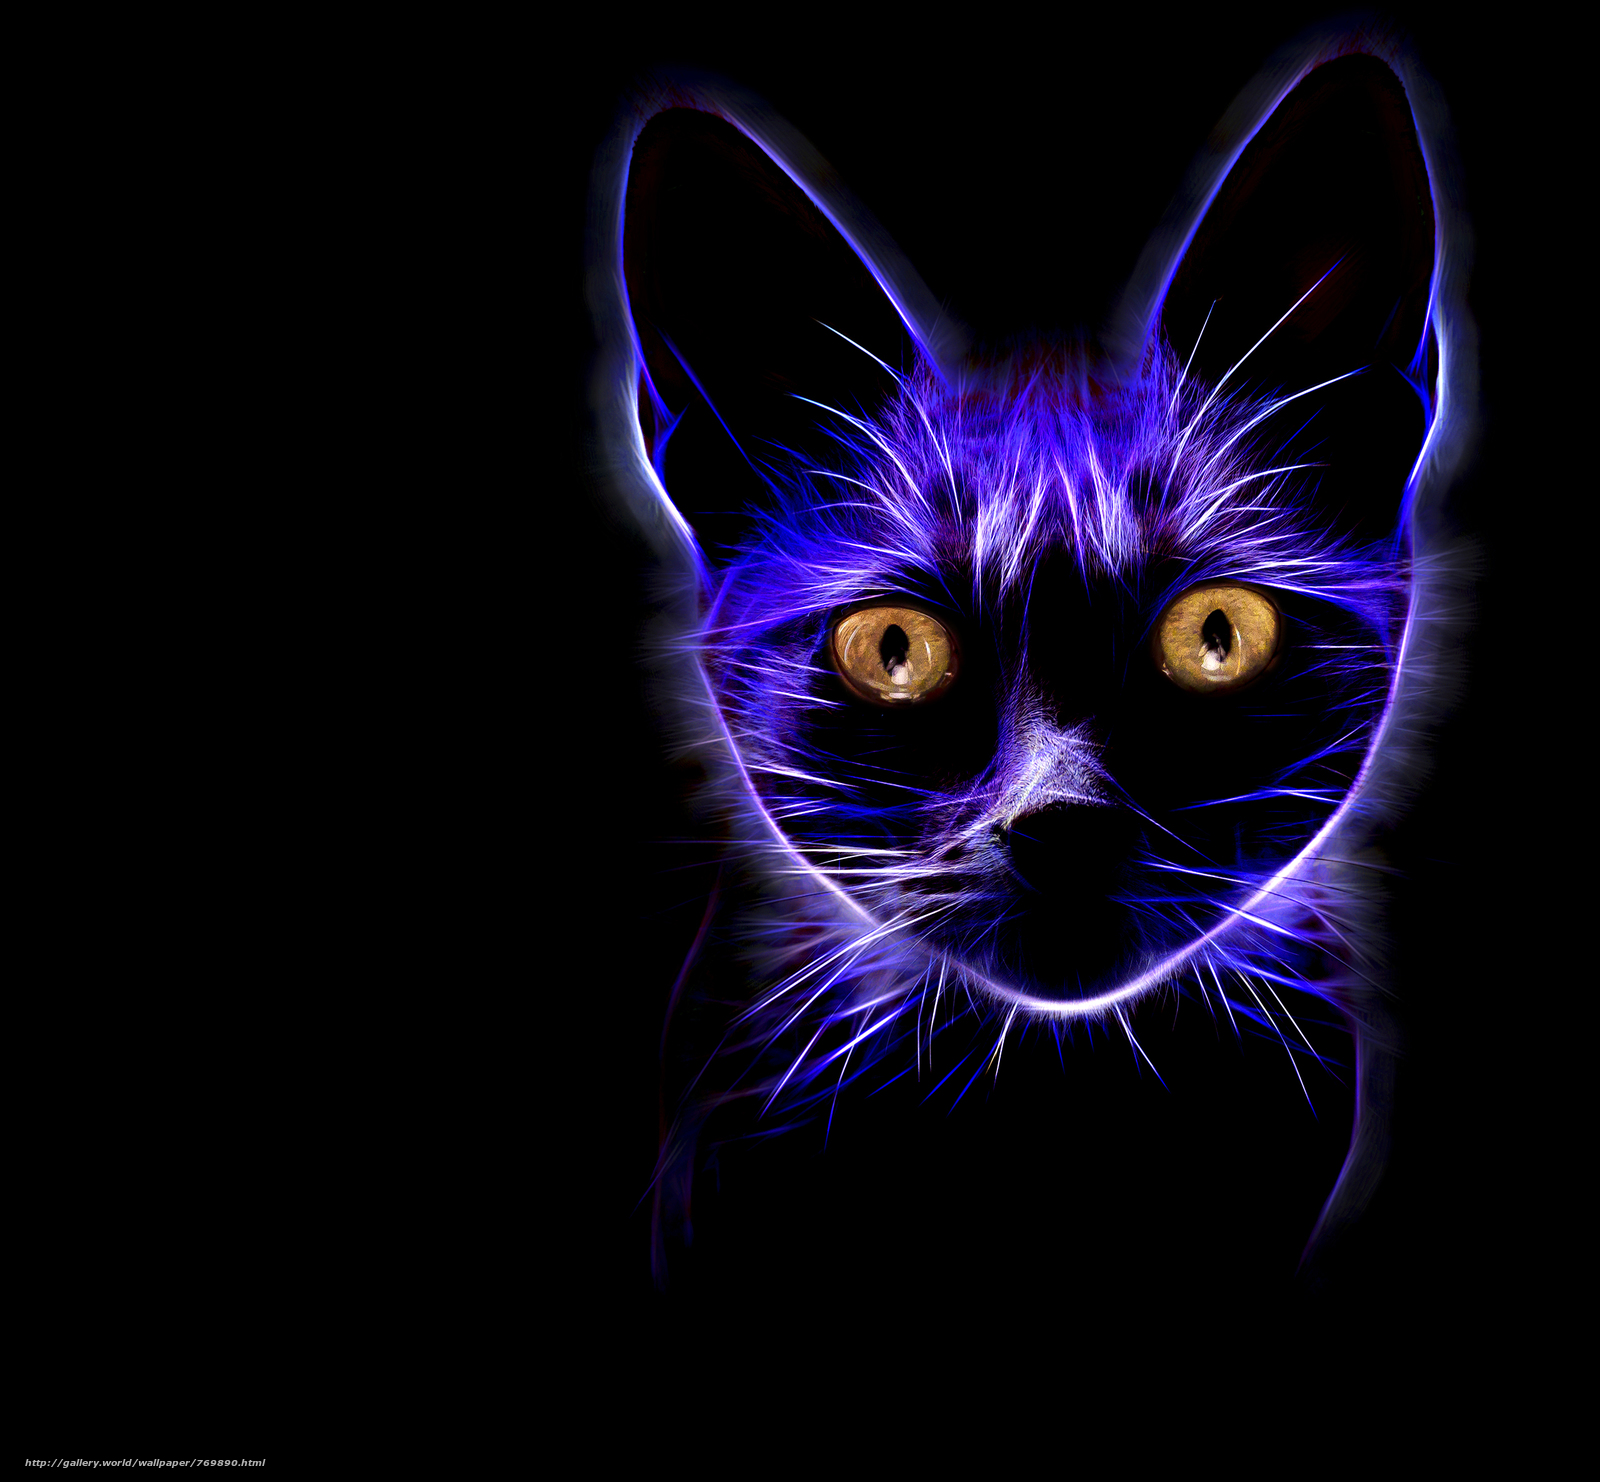 cat, cat, muzzle, Black background, abstraction